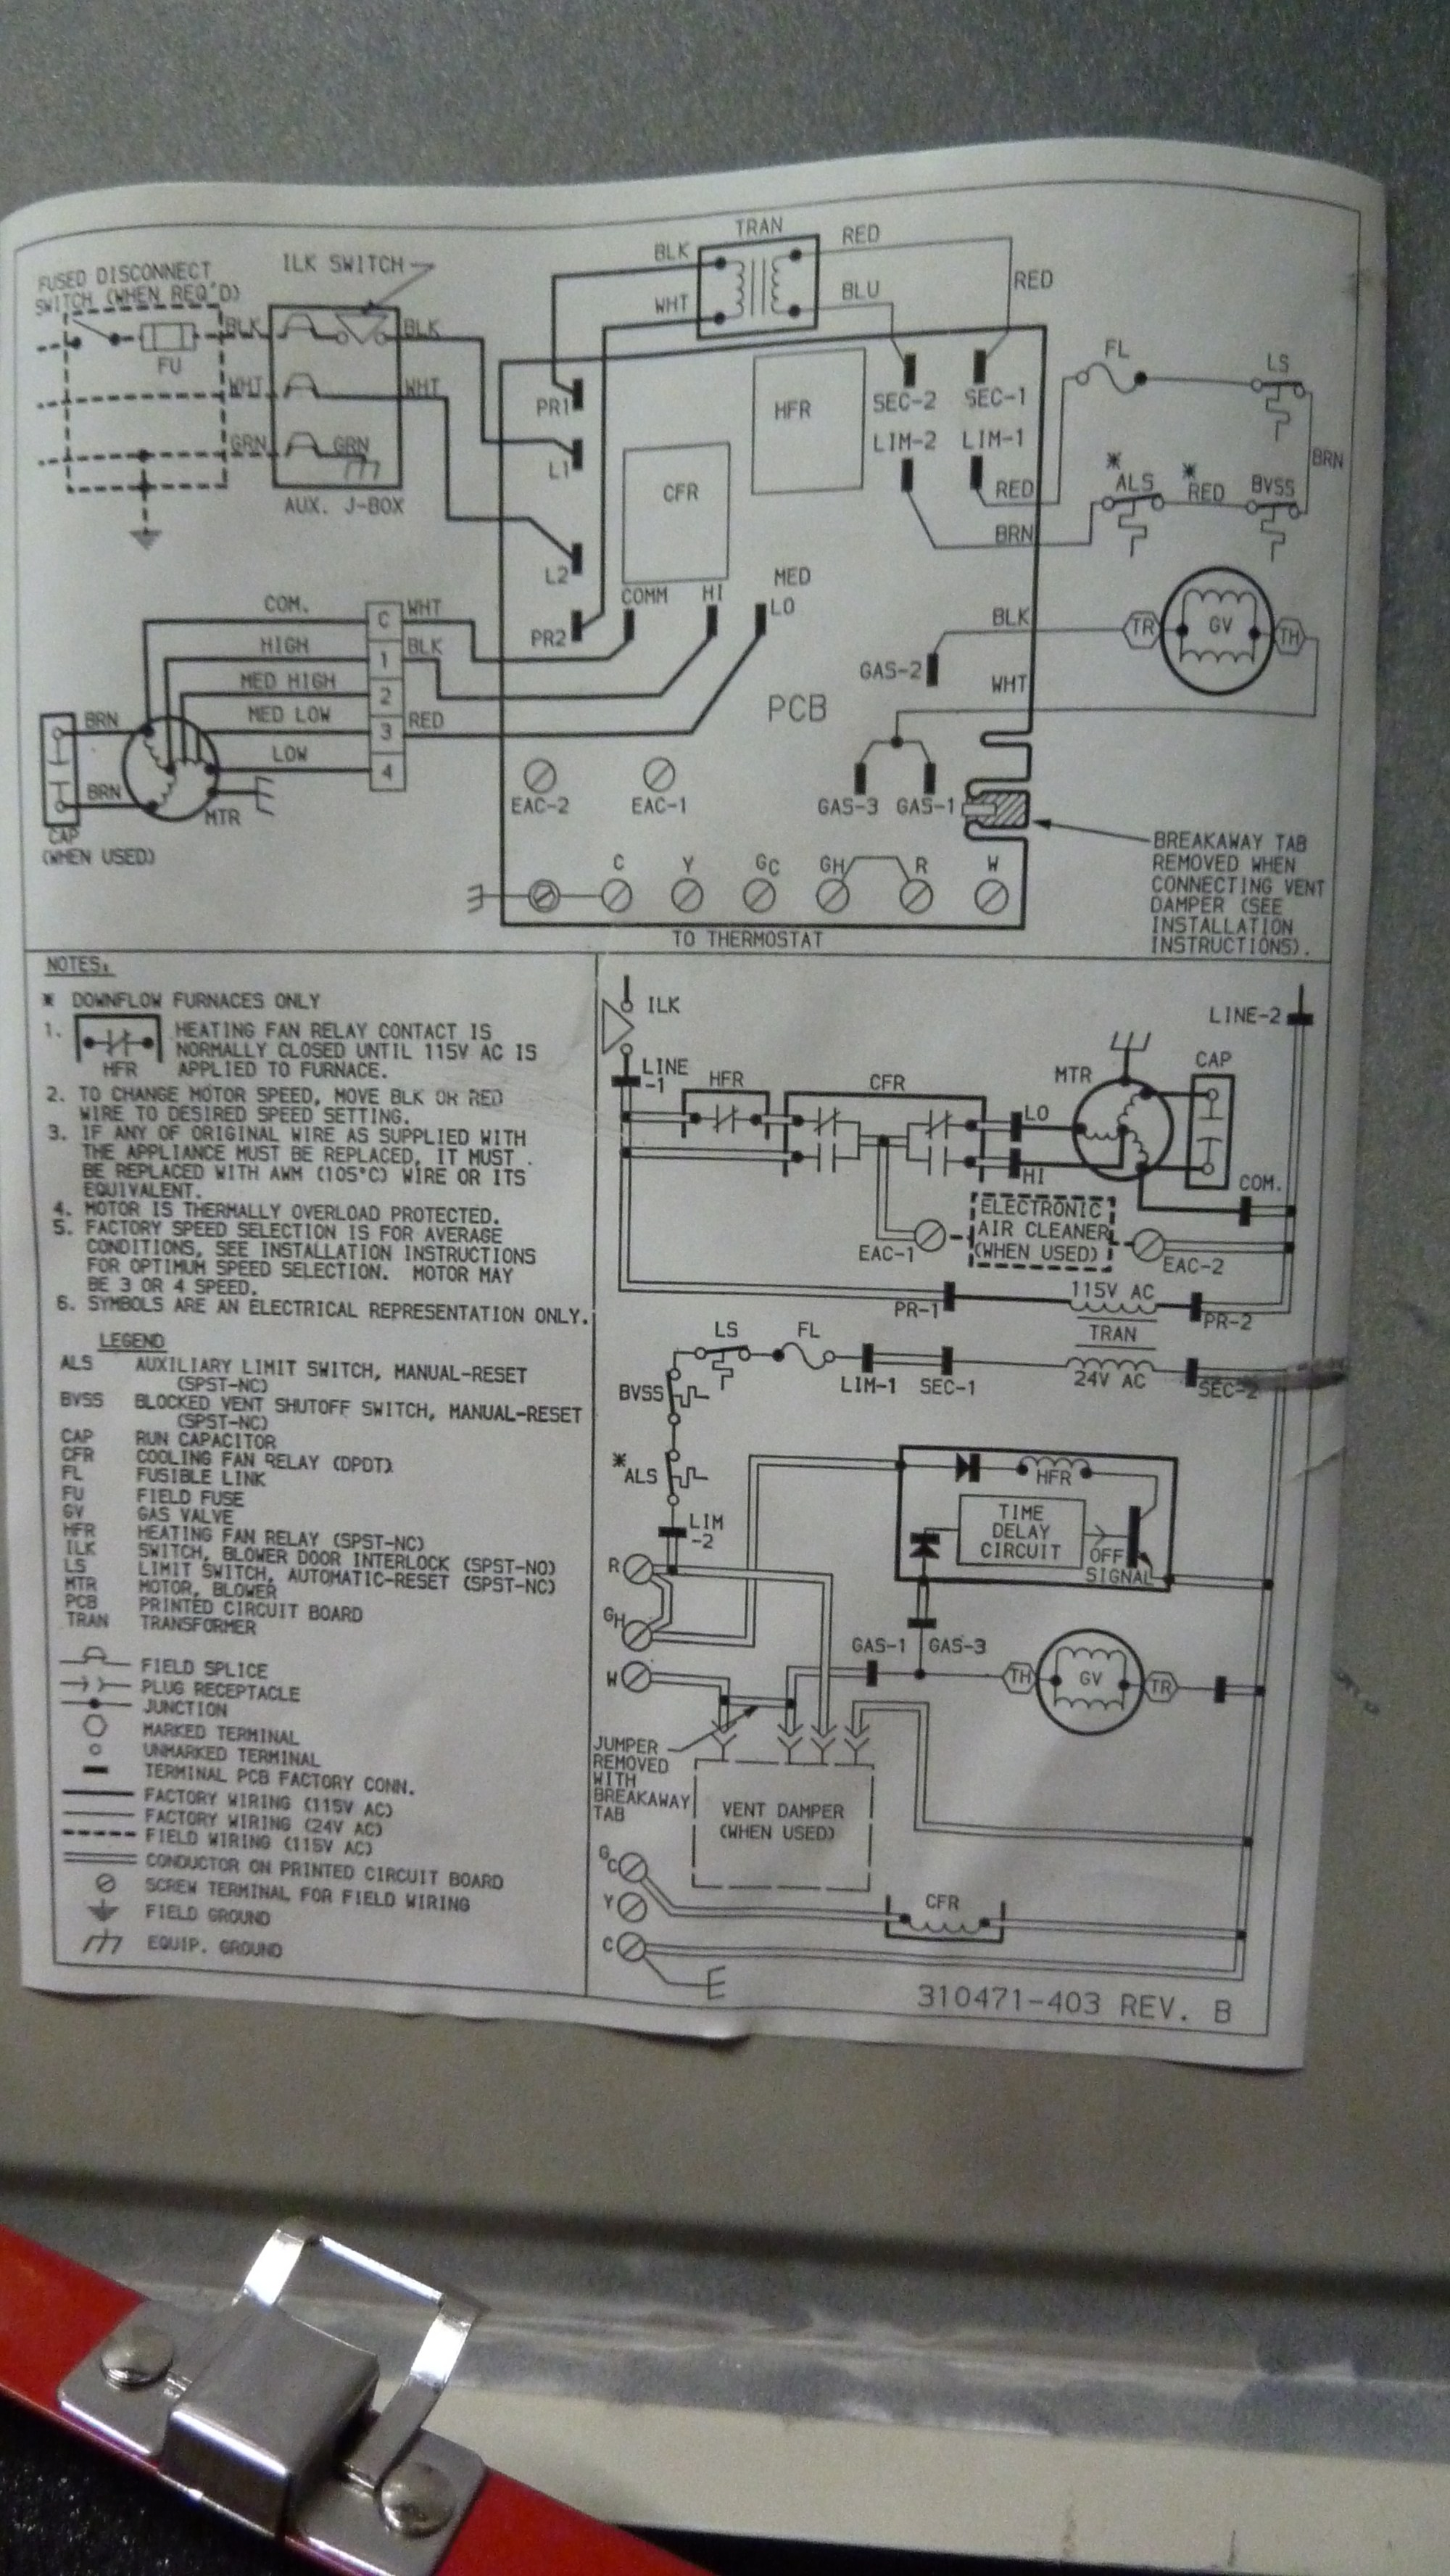 hight resolution of pictures of old bryant furnace wiring